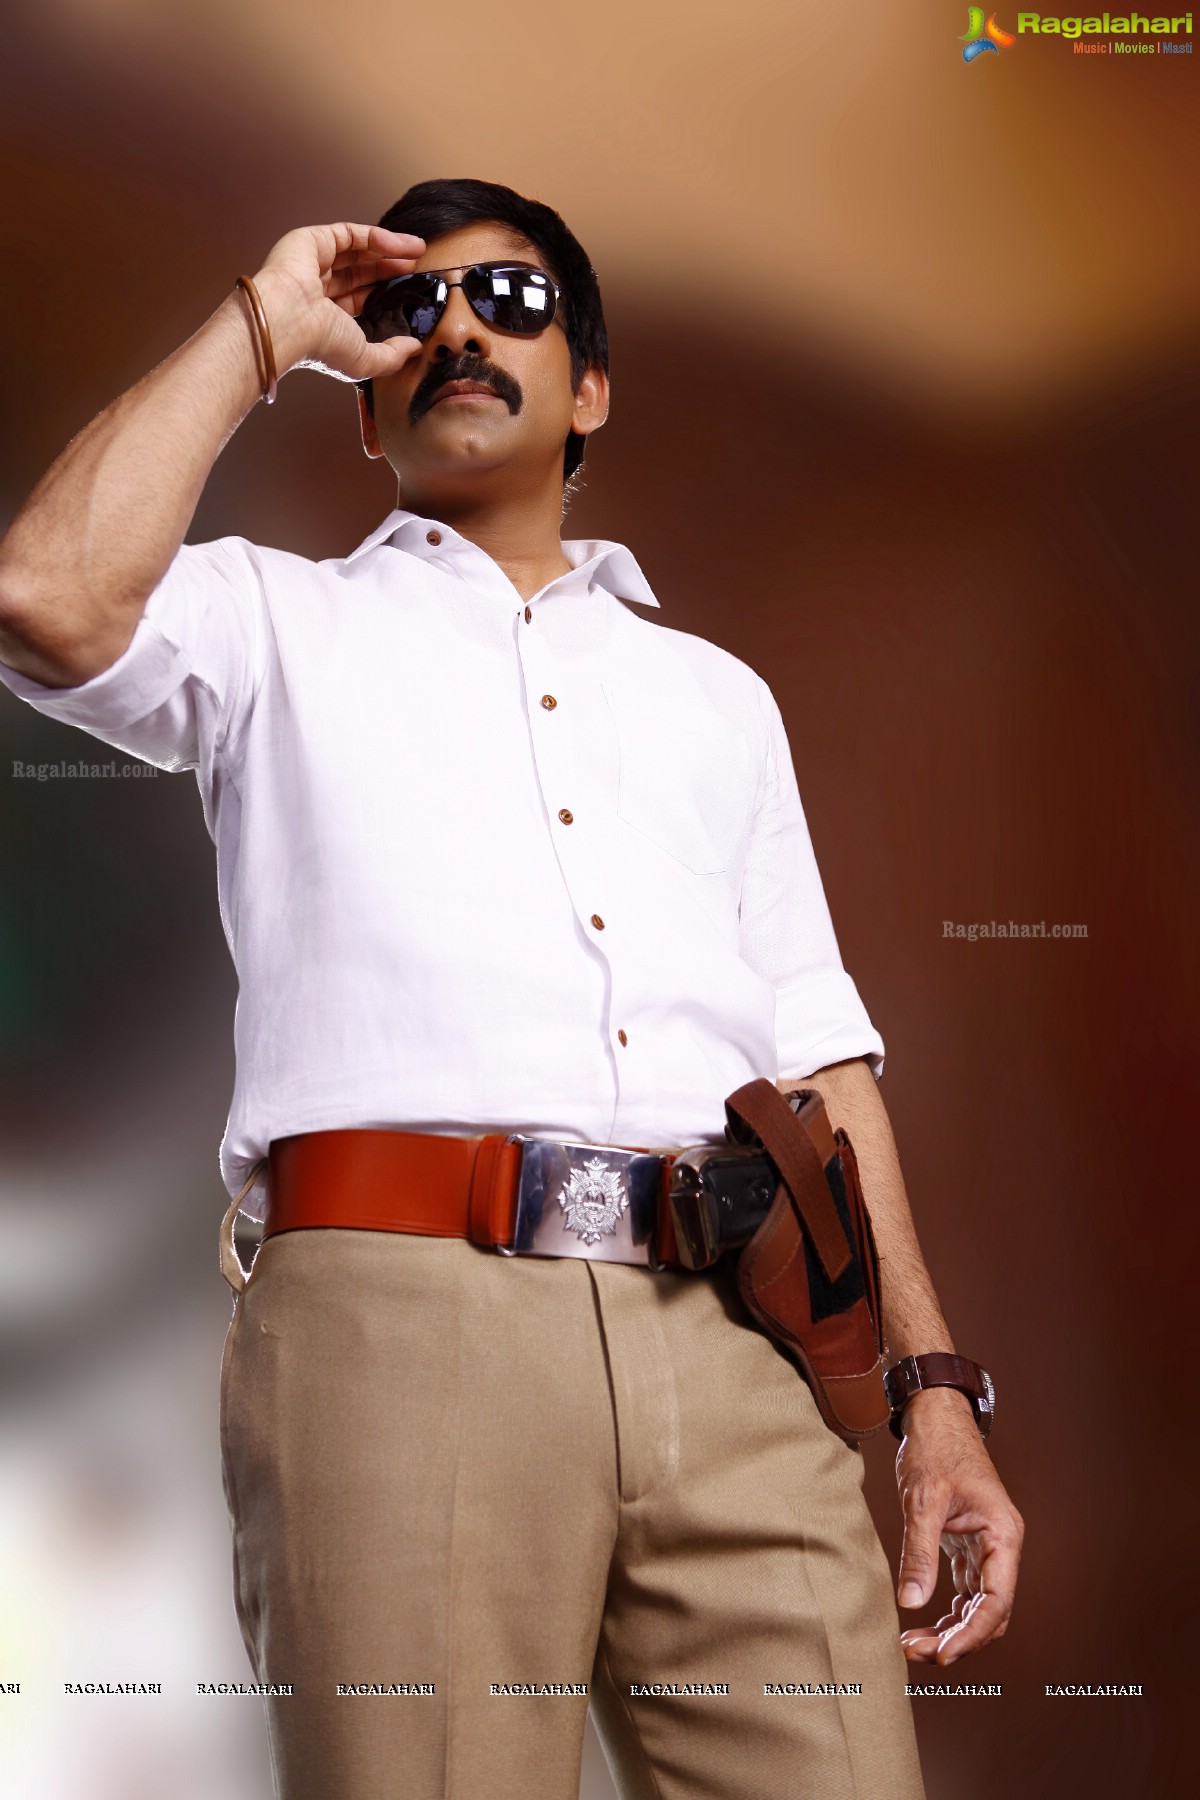 ravi teja image 5 | tollywood actress posters,images, photos